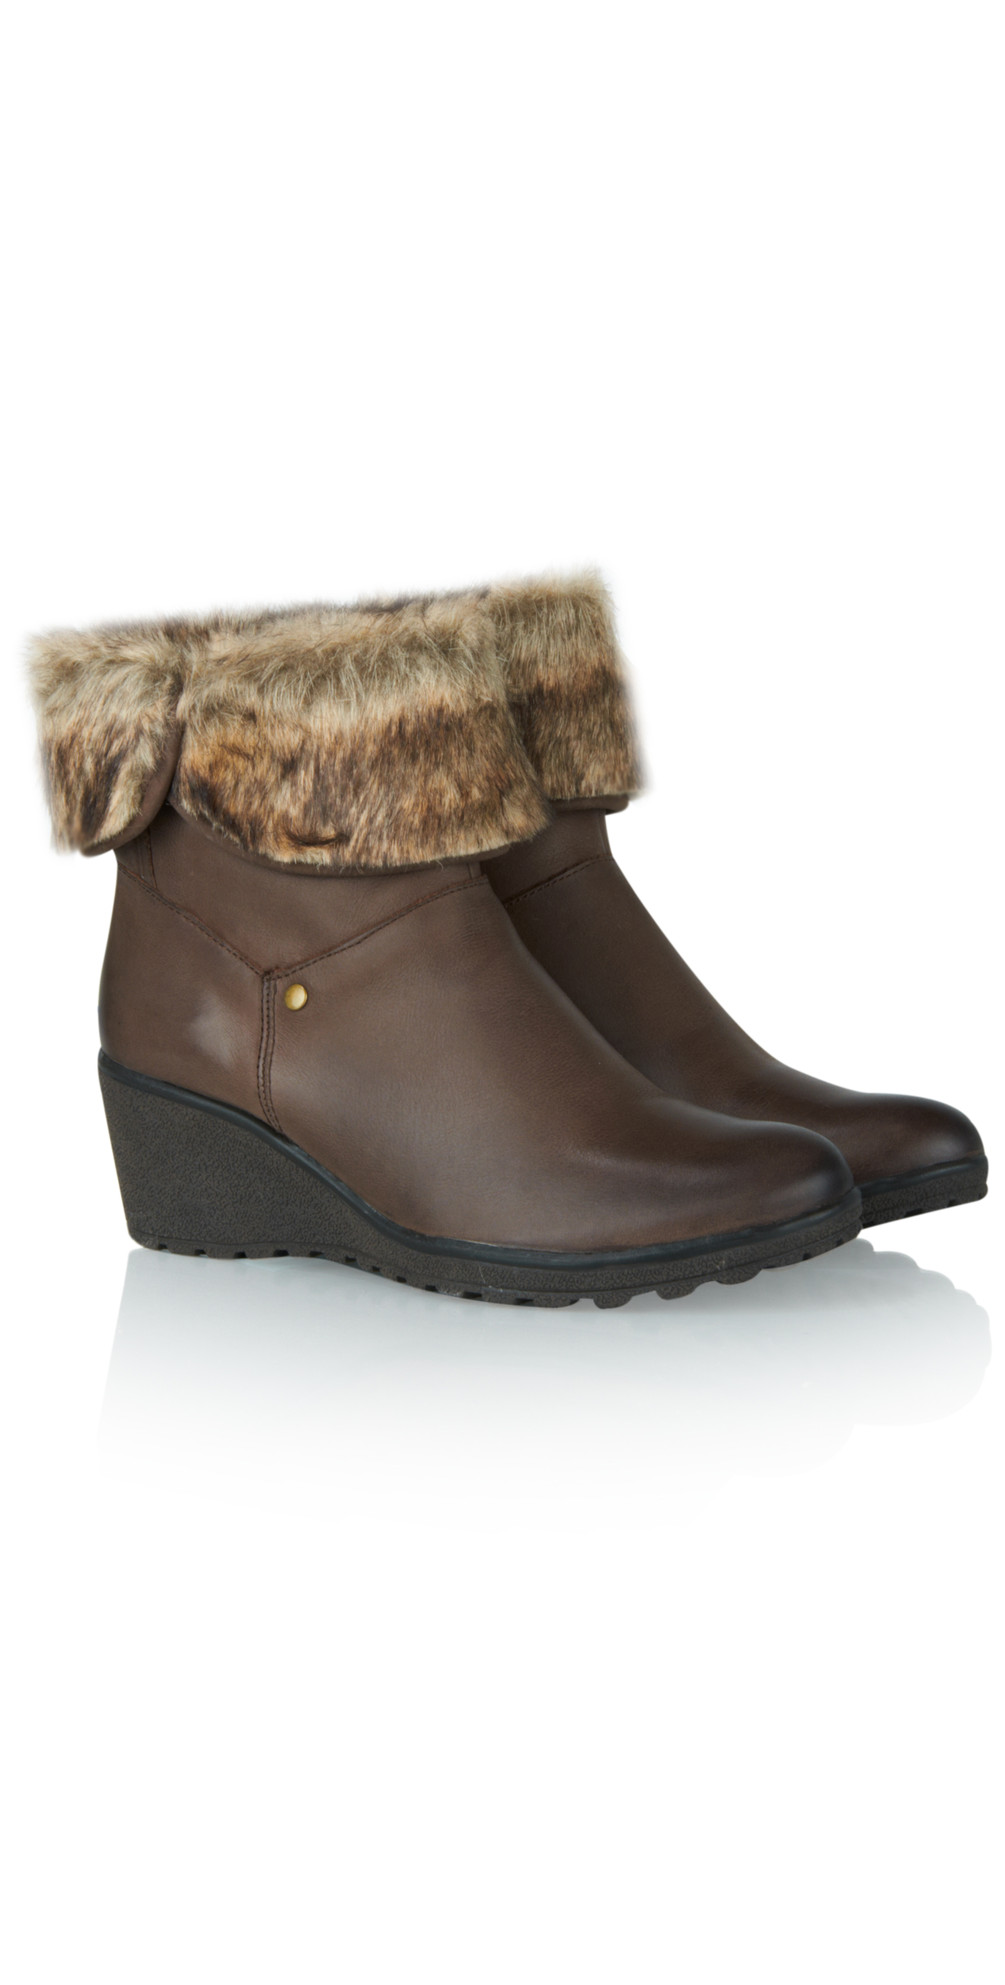 caprice footwear ankle fur leather wedge boot in brown